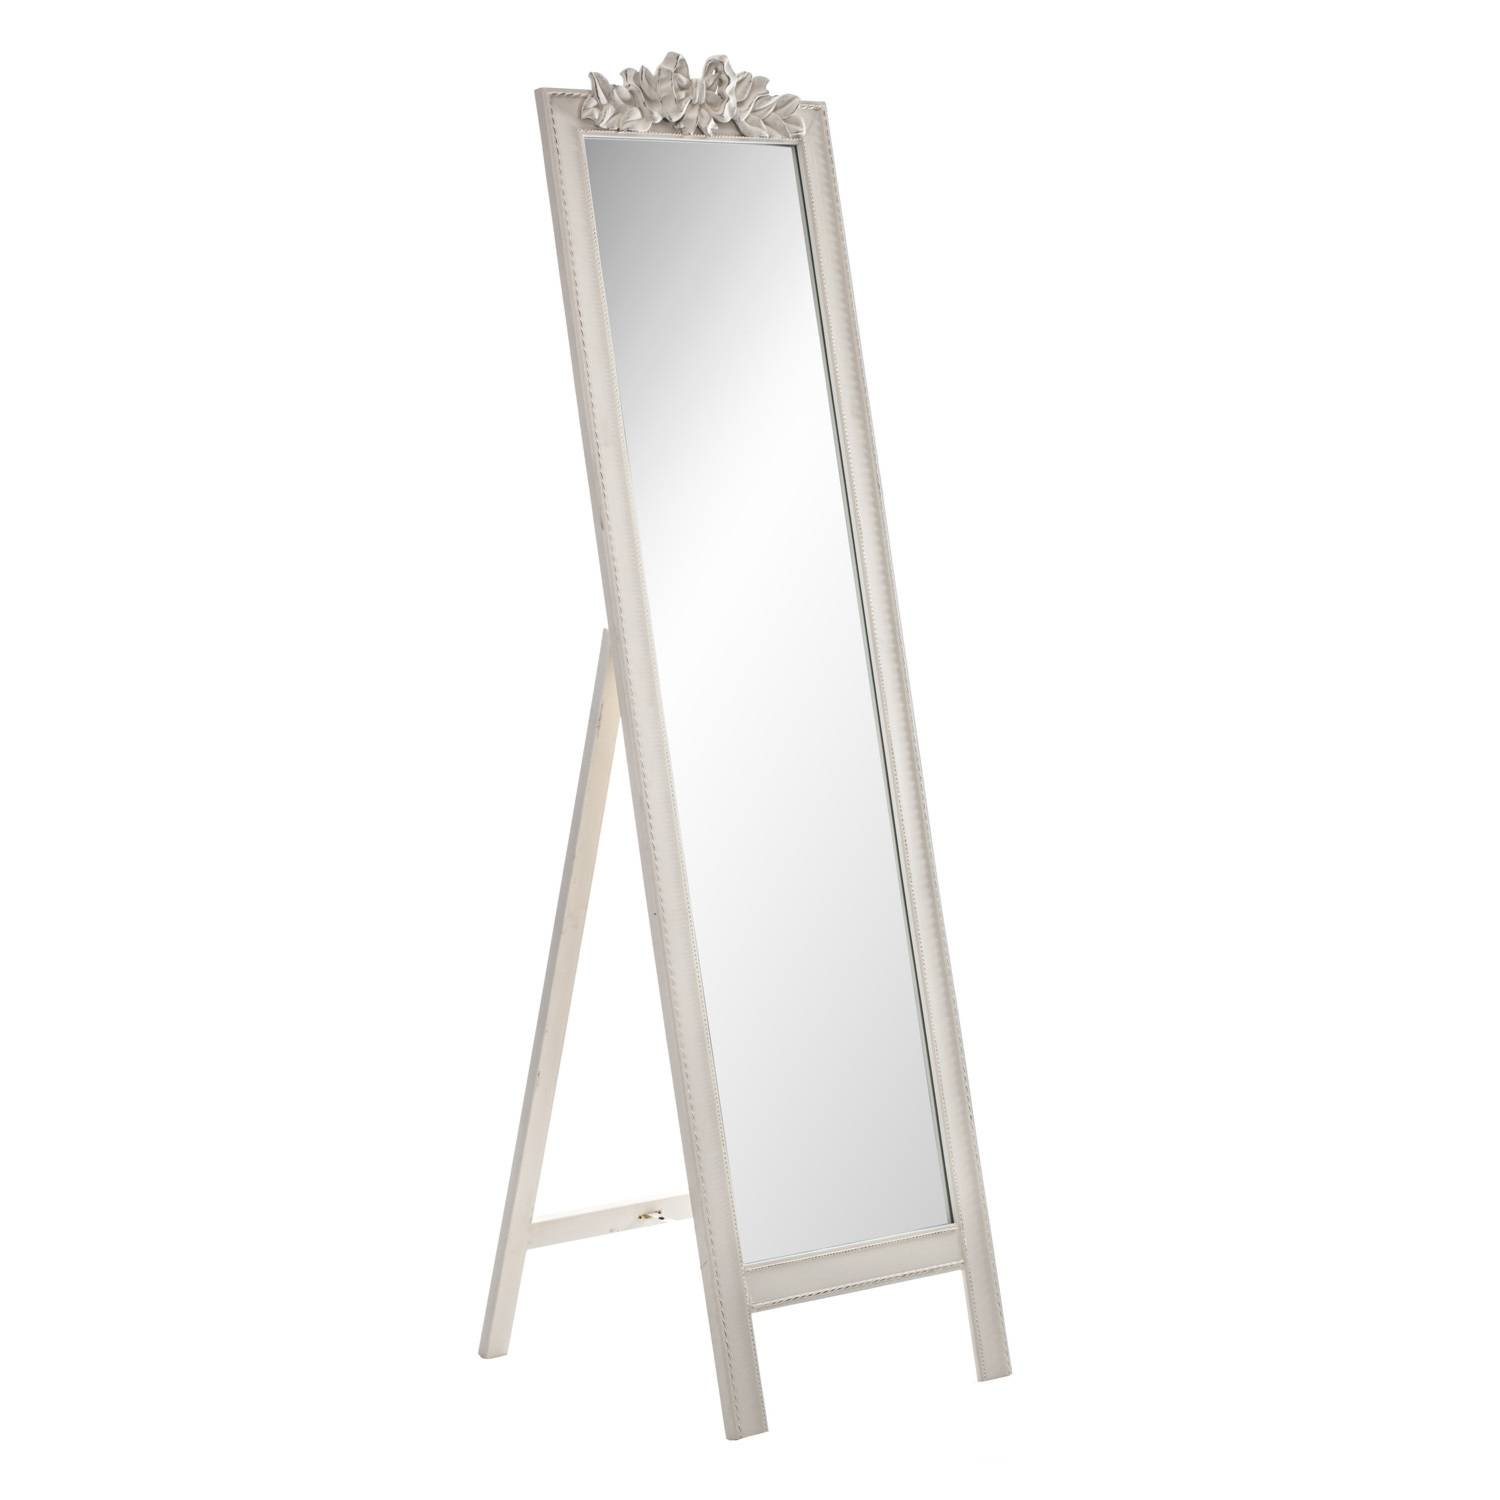 Homeware: Oval Full Length Standing Mirror | Large Floor Mirrors within Free Standing Dressing Mirrors (Image 15 of 25)